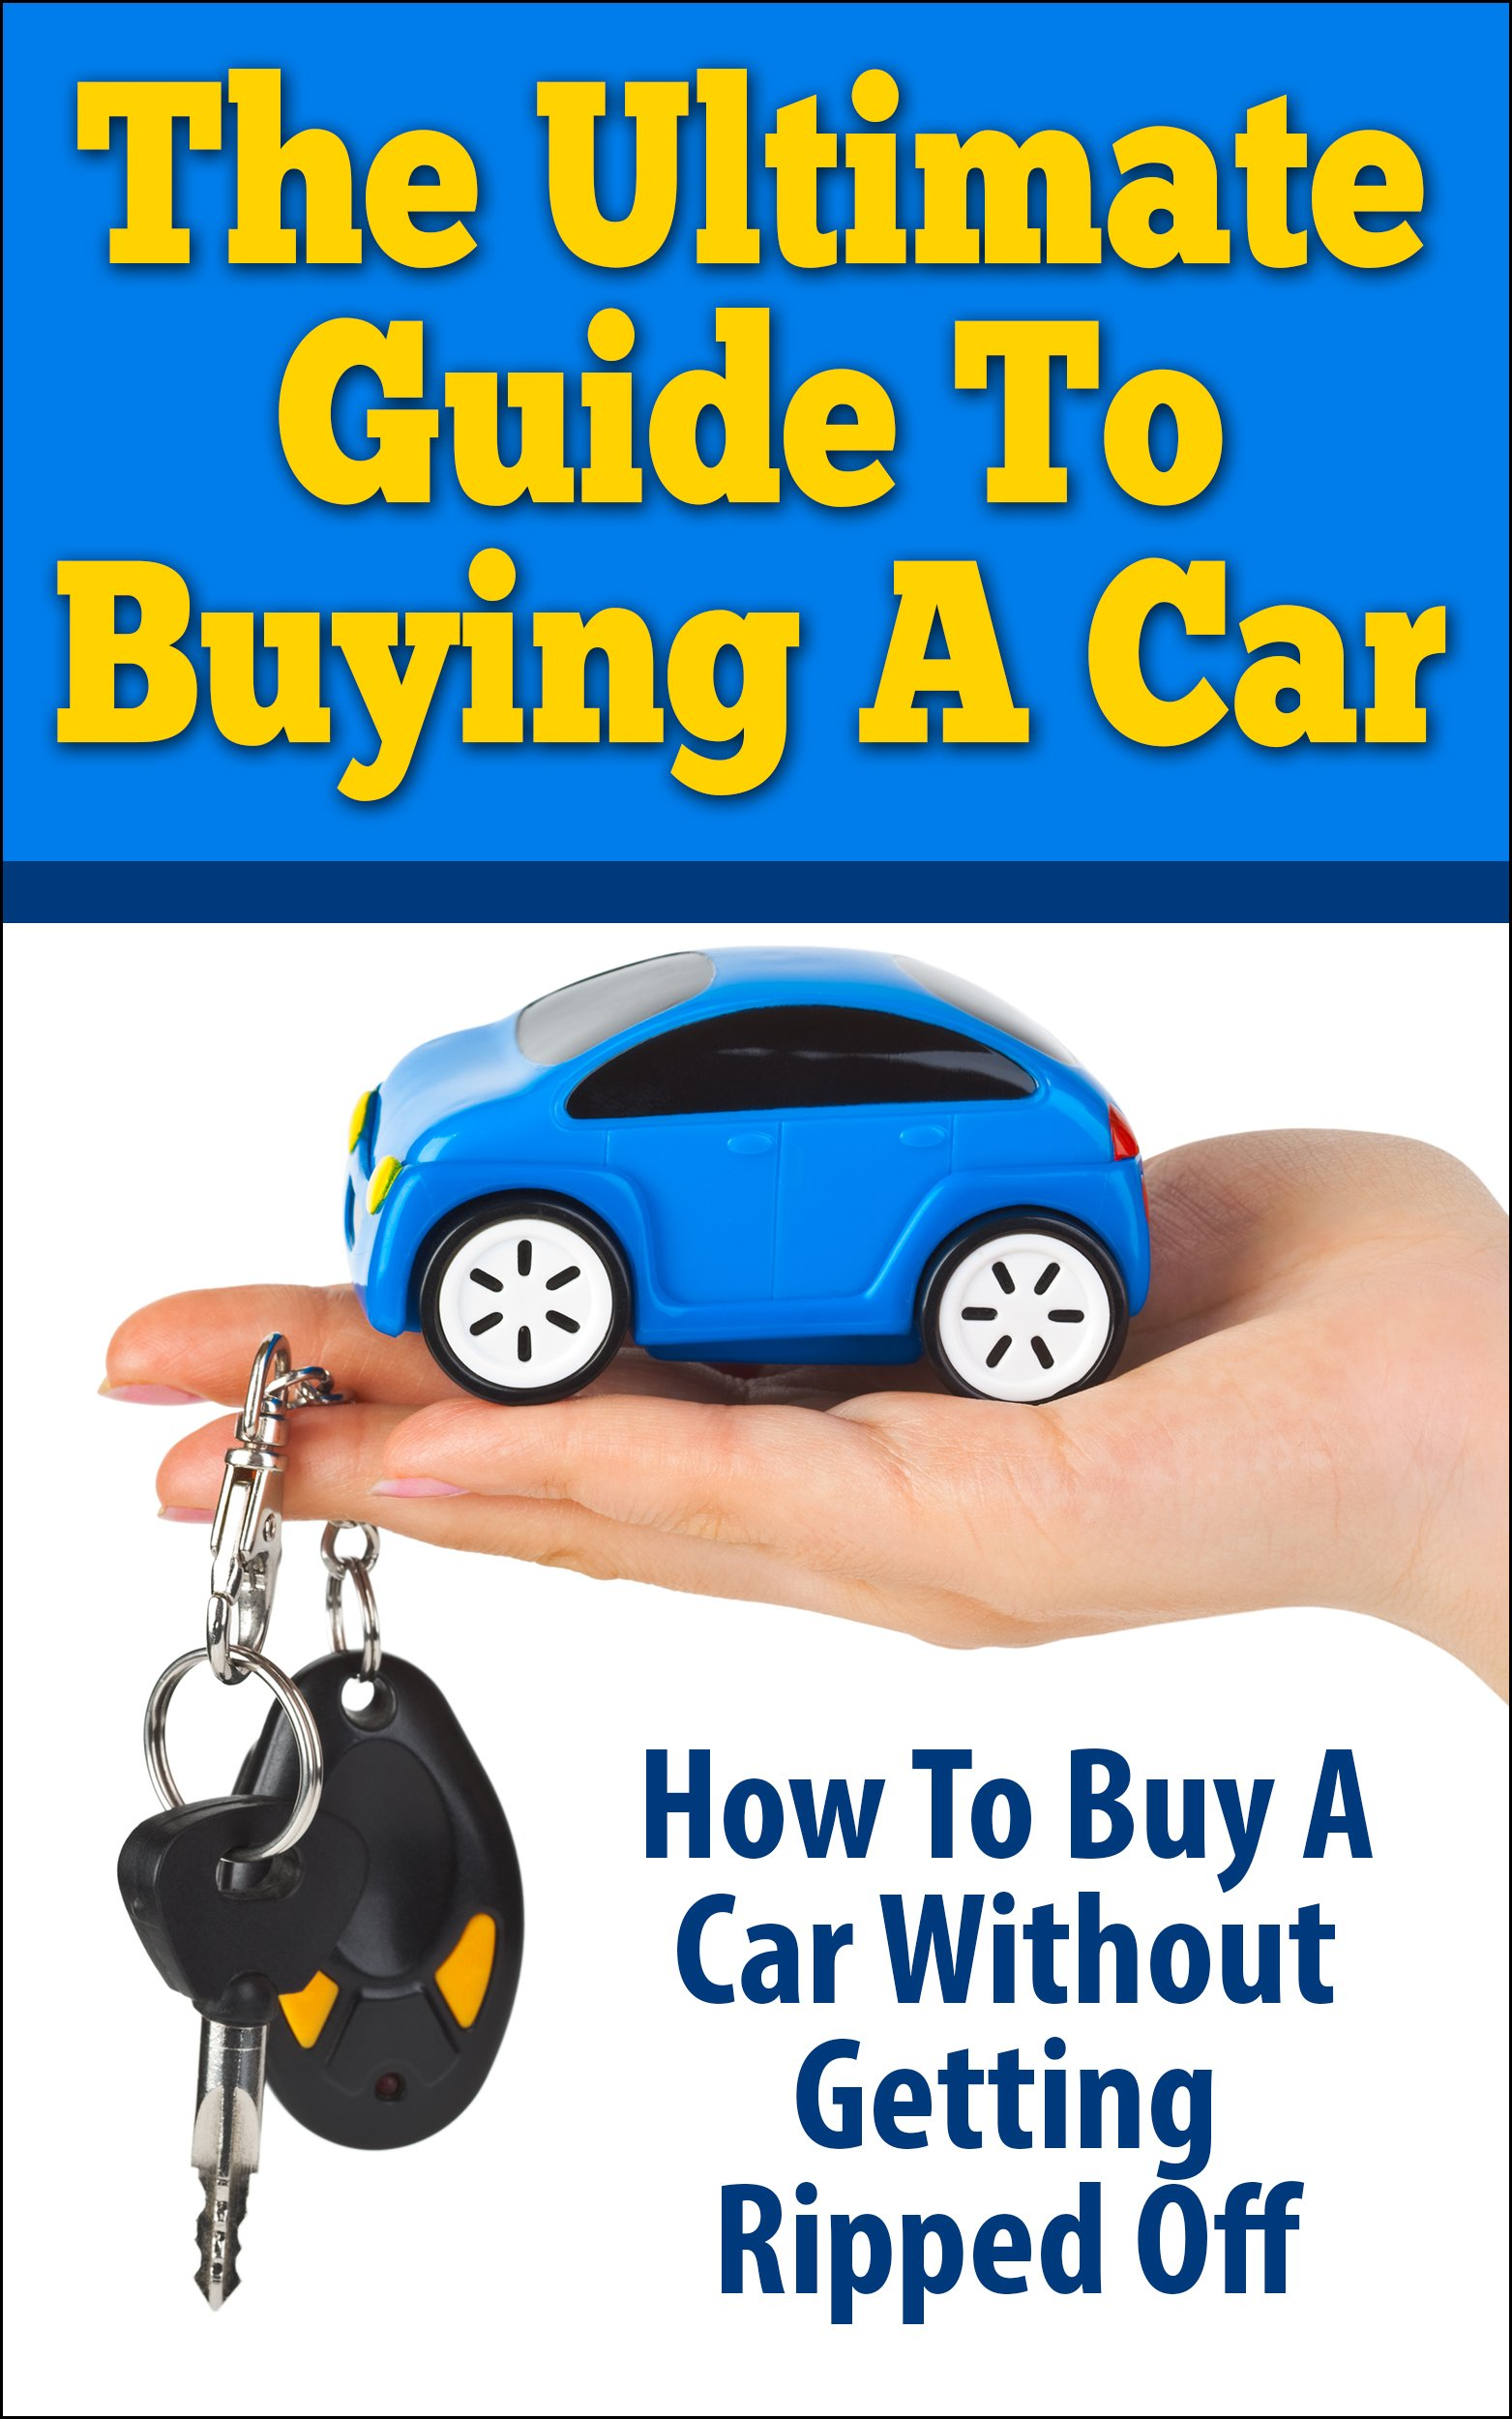 quotations · the ultimate guide to ing a car how to a car without ting ripped